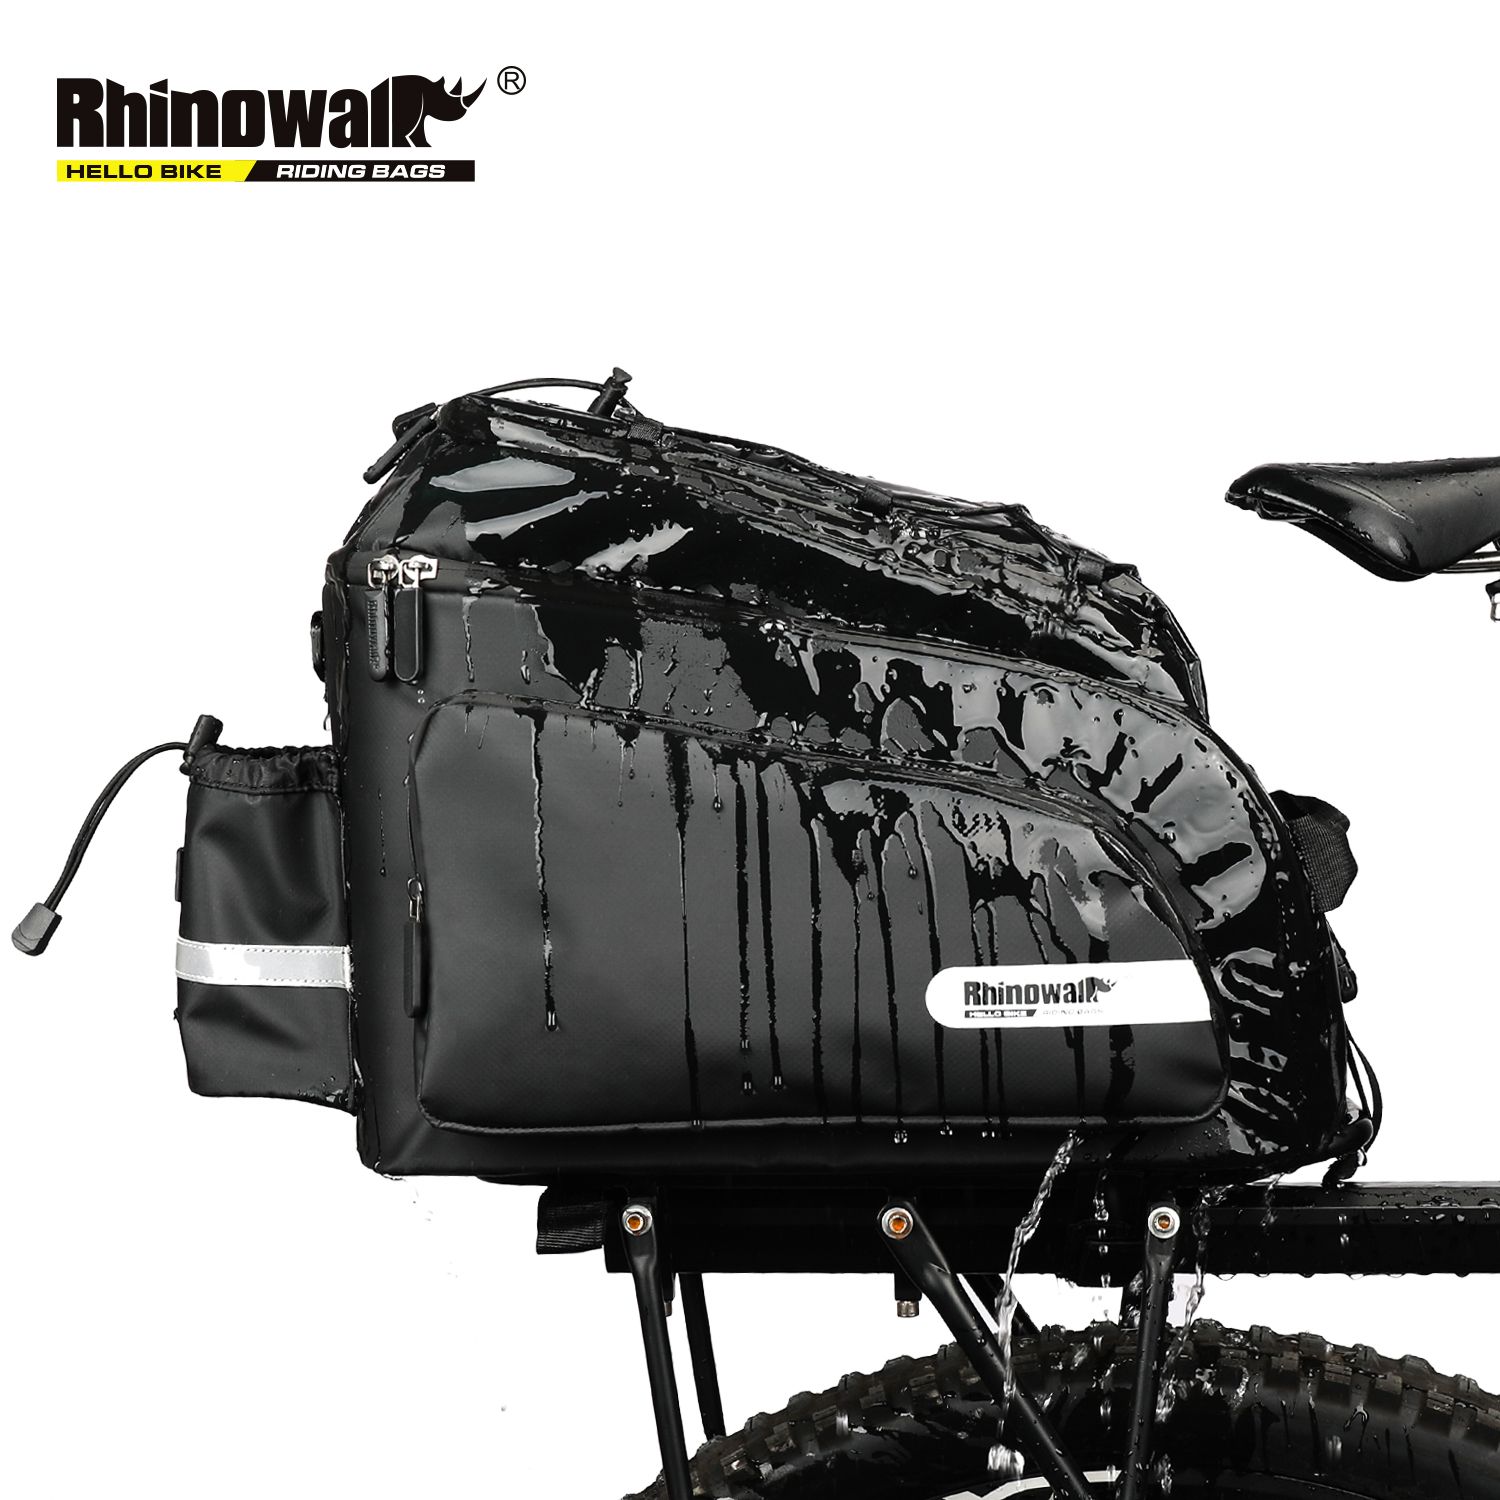 Rhinowalk Rainproof Bicycle Luggage Bags Mountain Bike Rear Trunk Pannier for Cycling Travel Camera Storage Bag Multifunctional|Bicycle Bags & Panniers| |  - title=